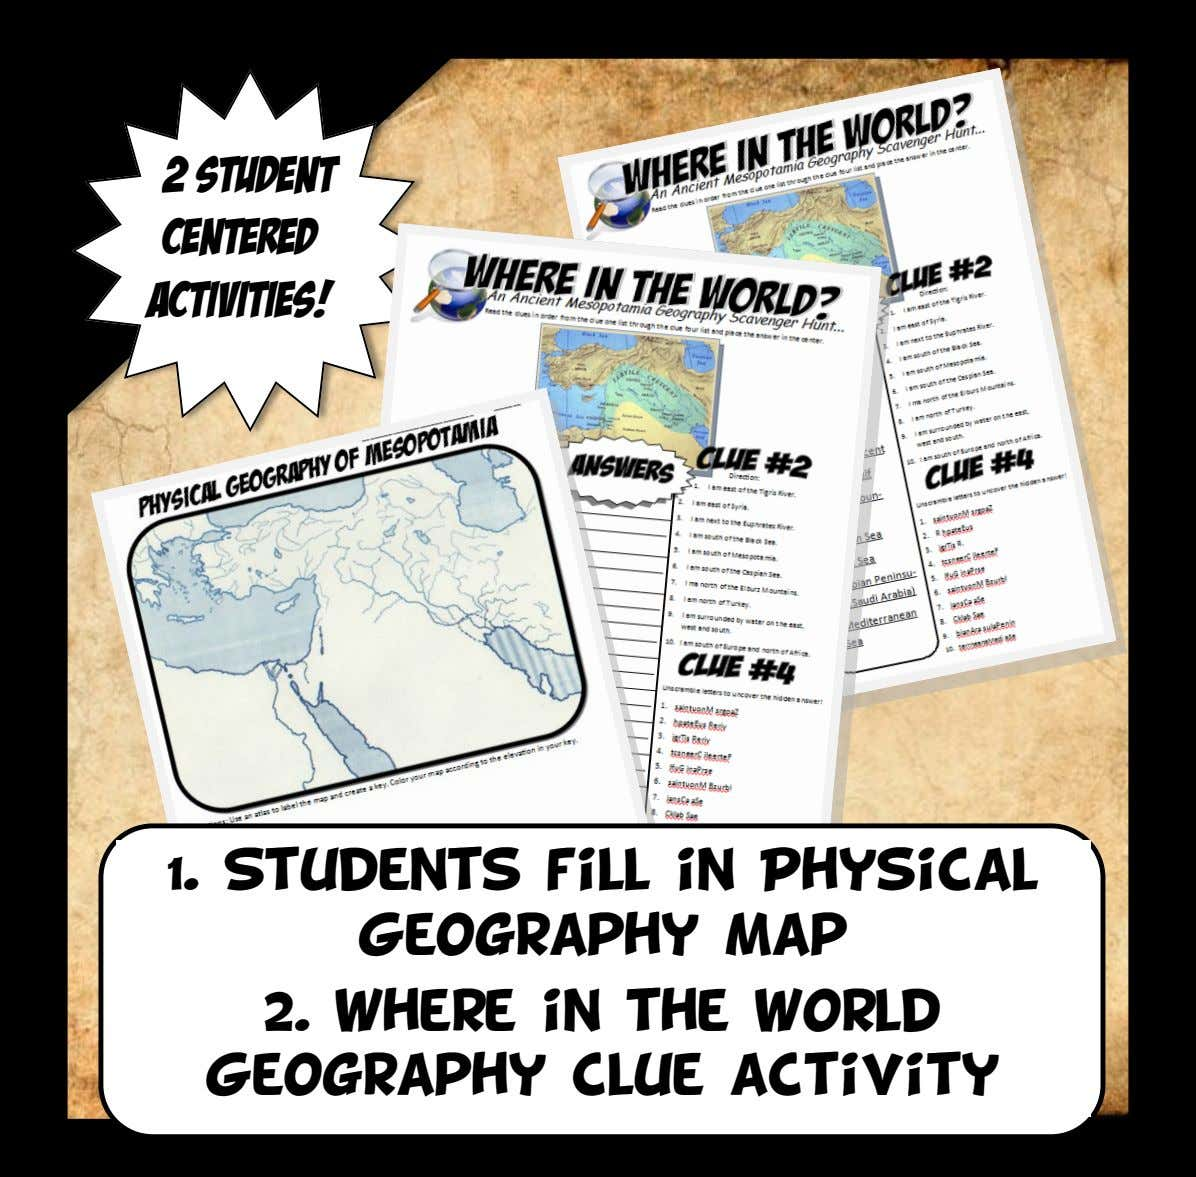 2 Student Centered Activities! 1. Students fill in Physical Geography Map 2. Where in the